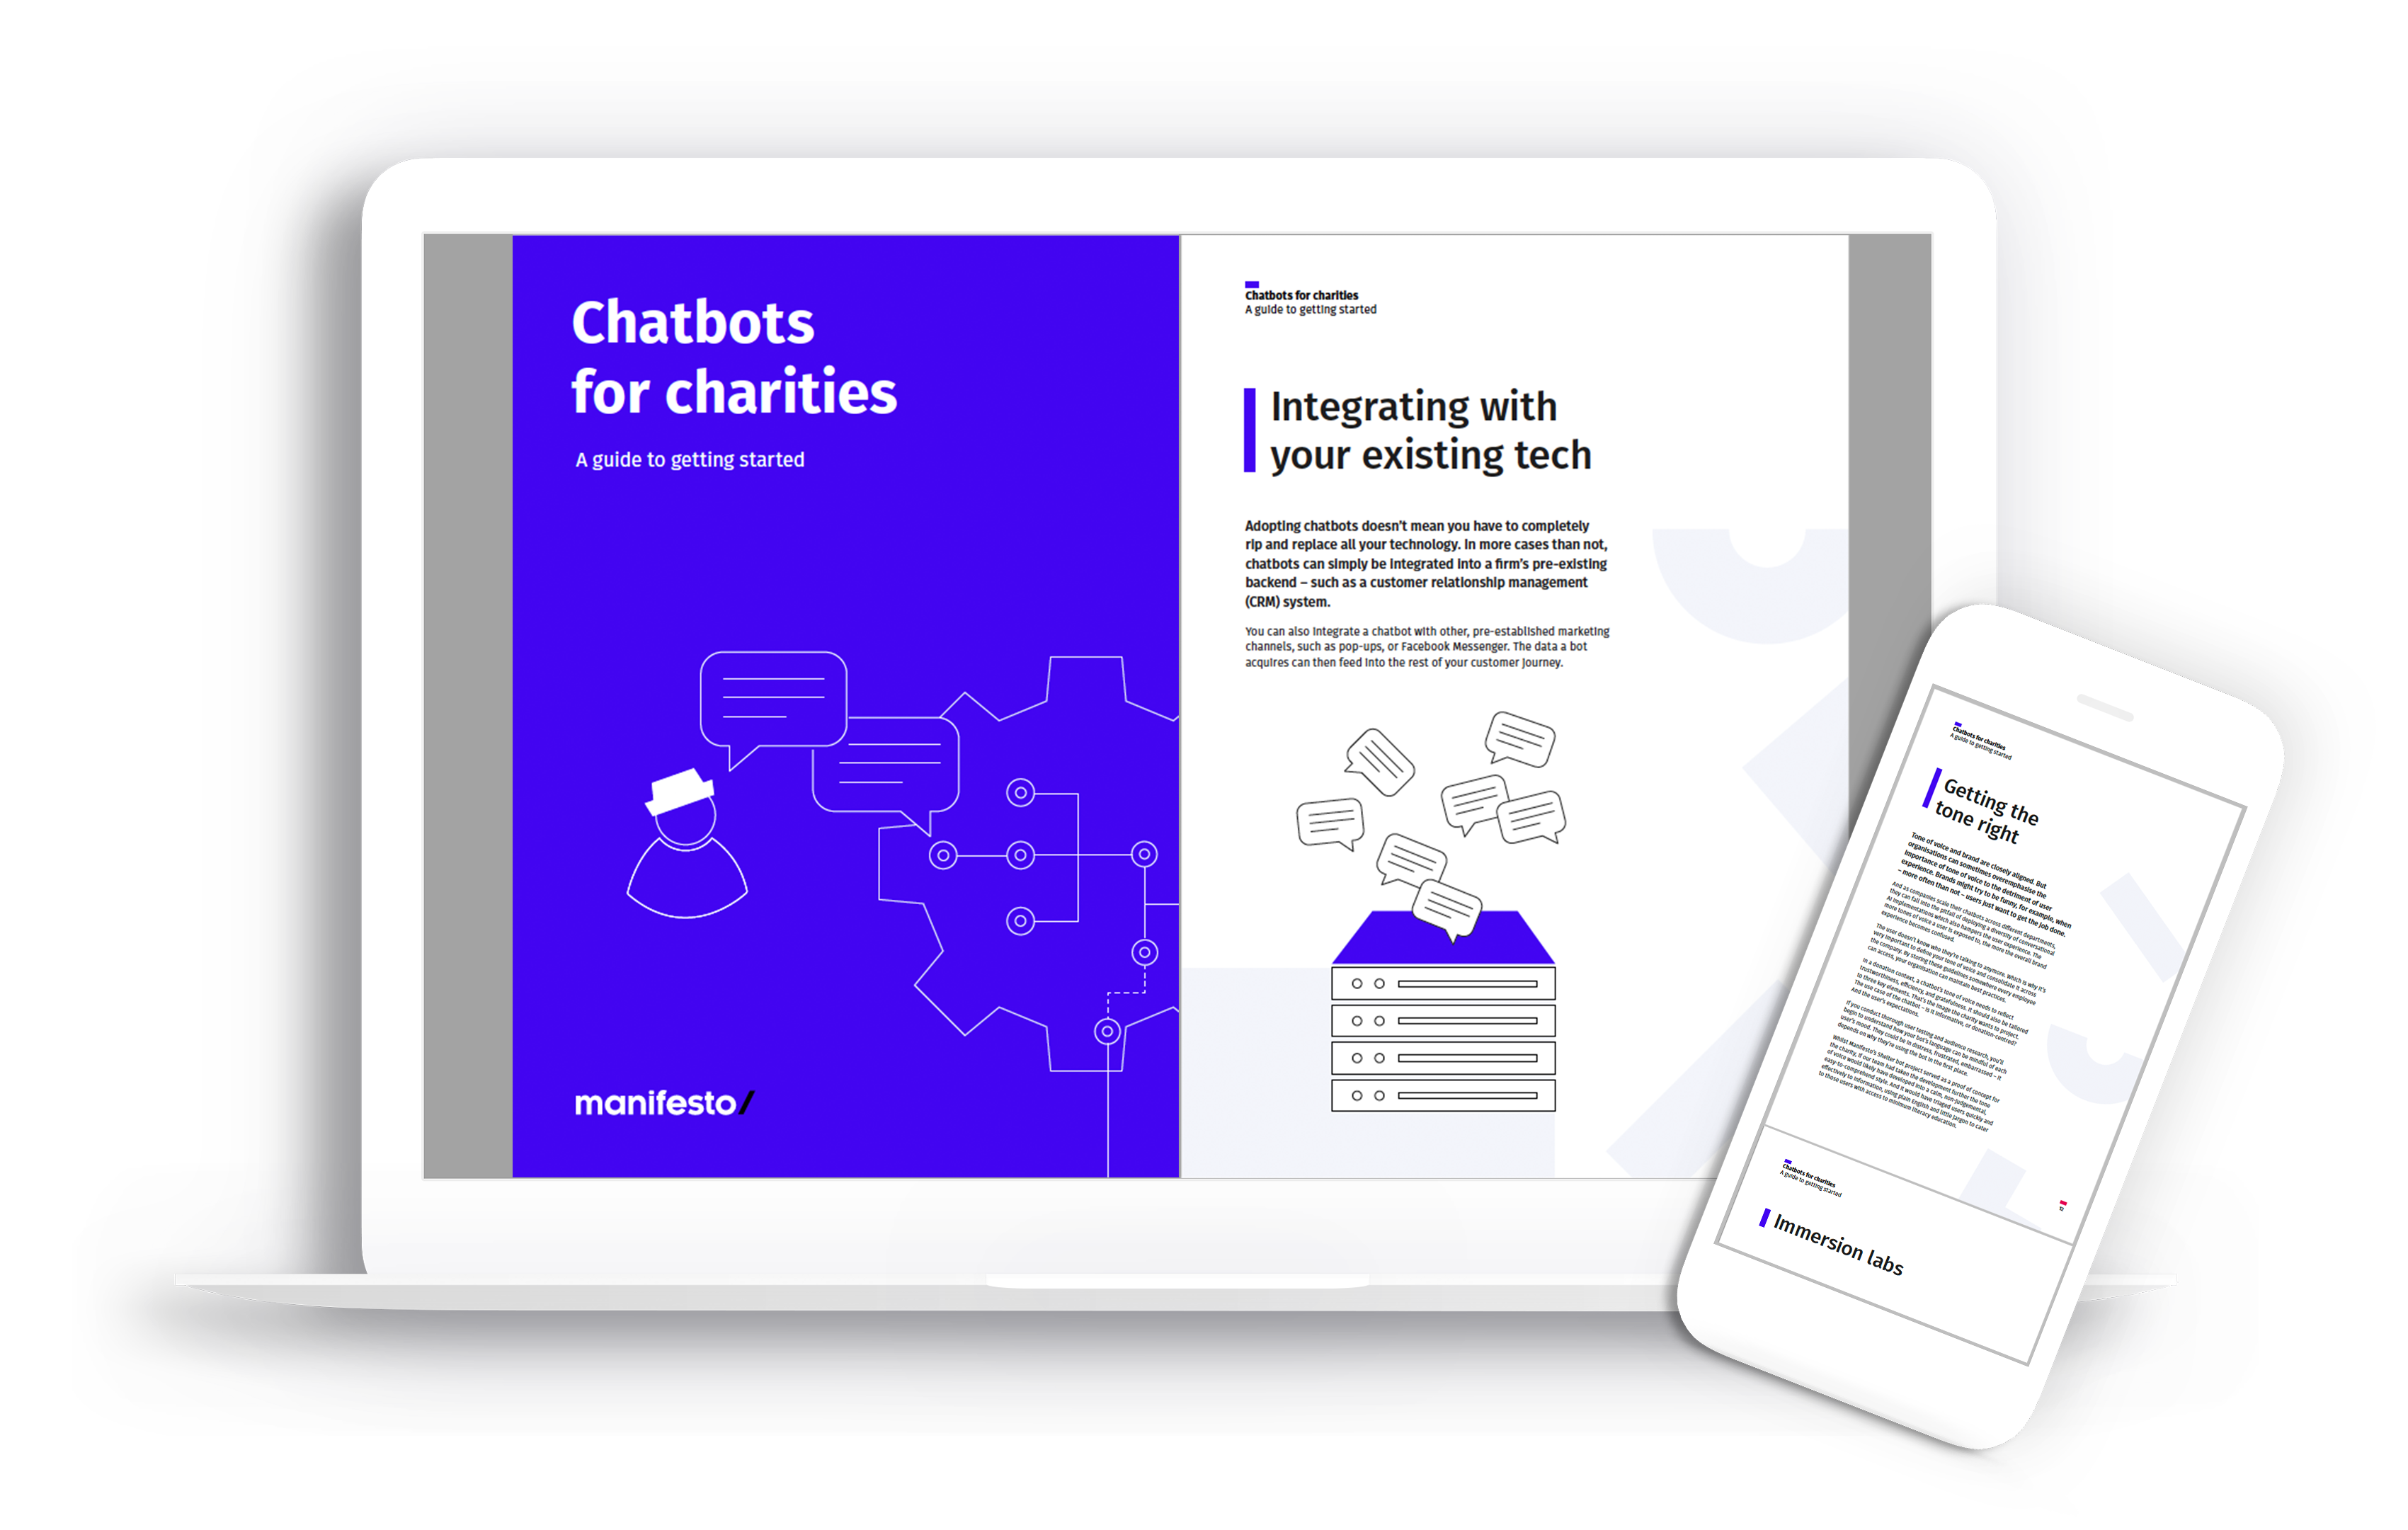 Chatbots for charities on desktop and mobile